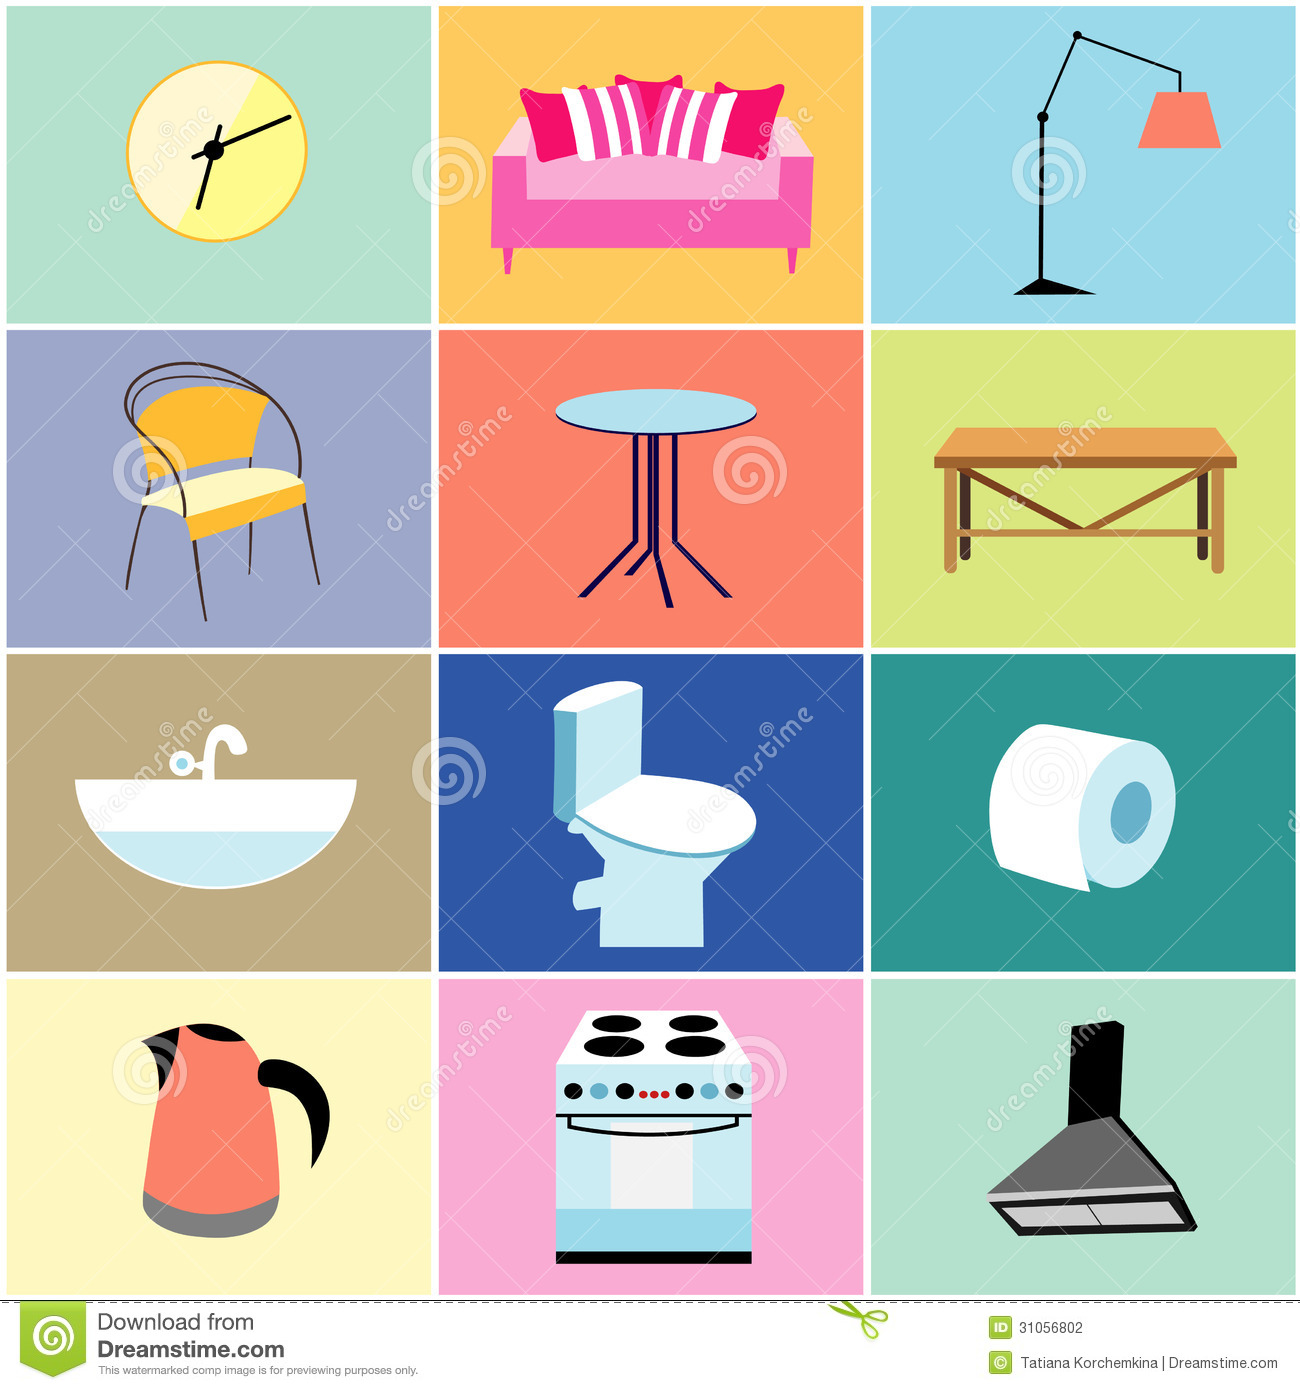 Misc Furniture And Household Items Stock Vector